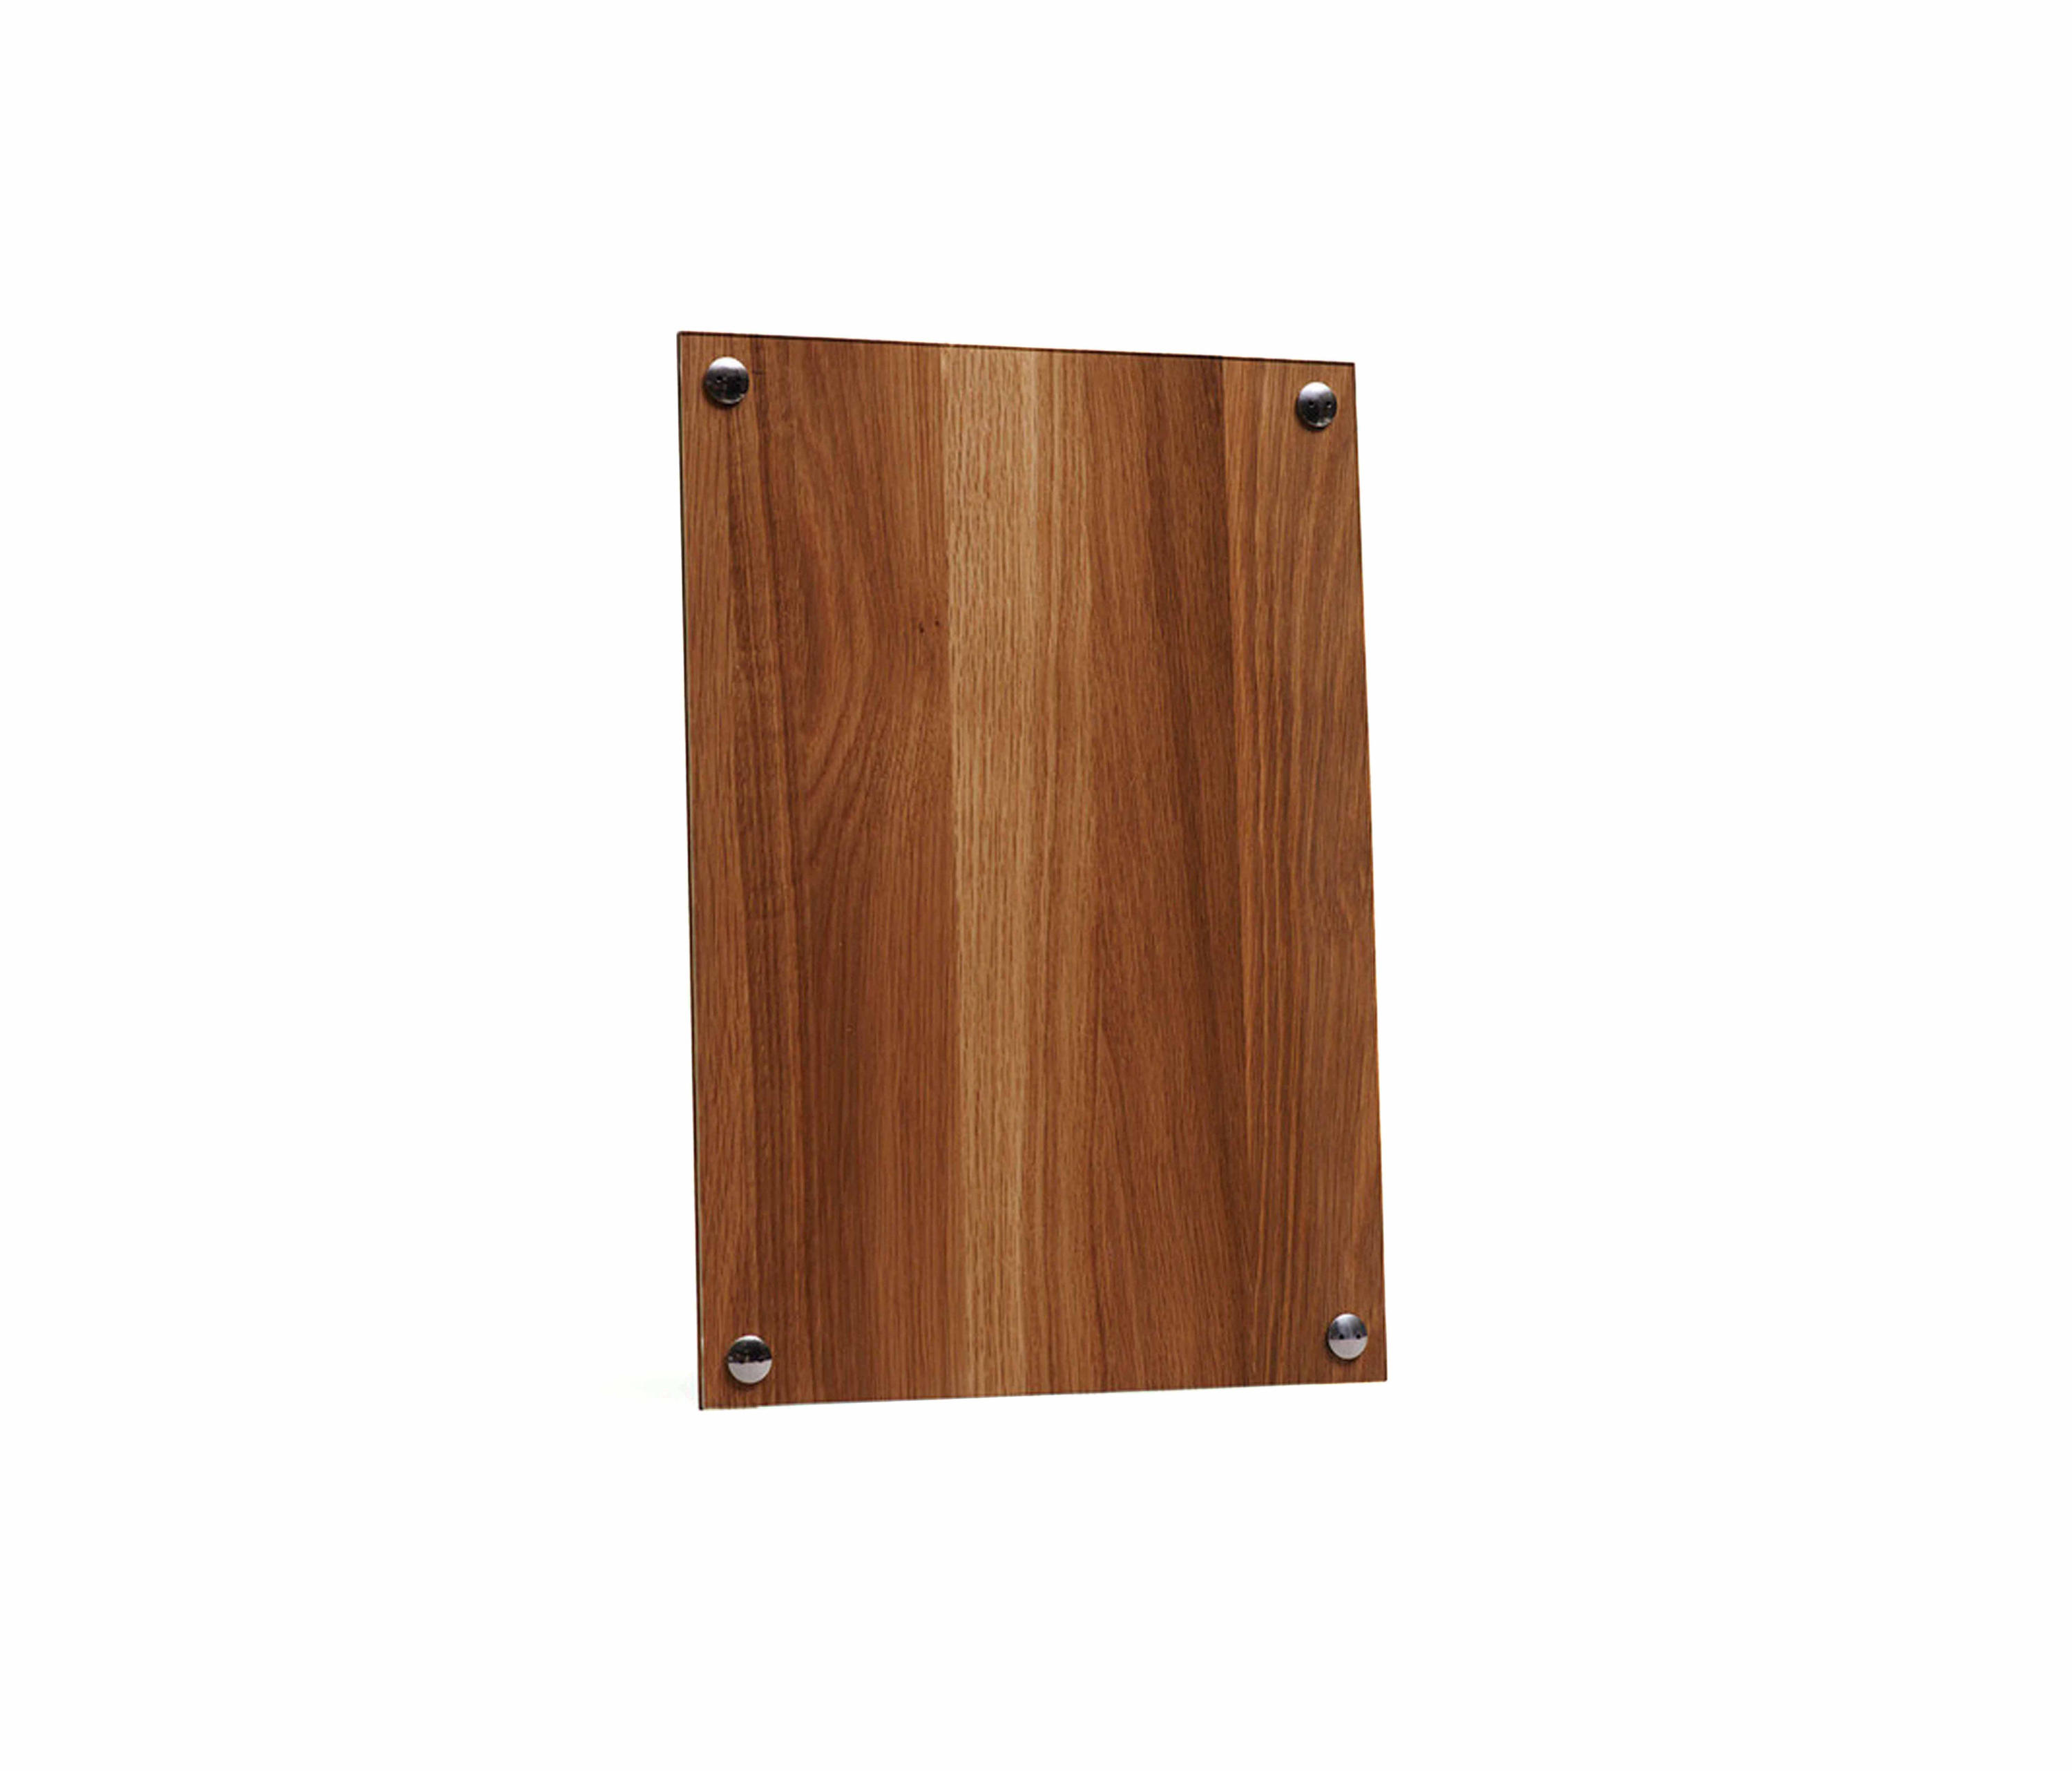 A Frame Picture Frame Natural Oak Wood Large Architonic